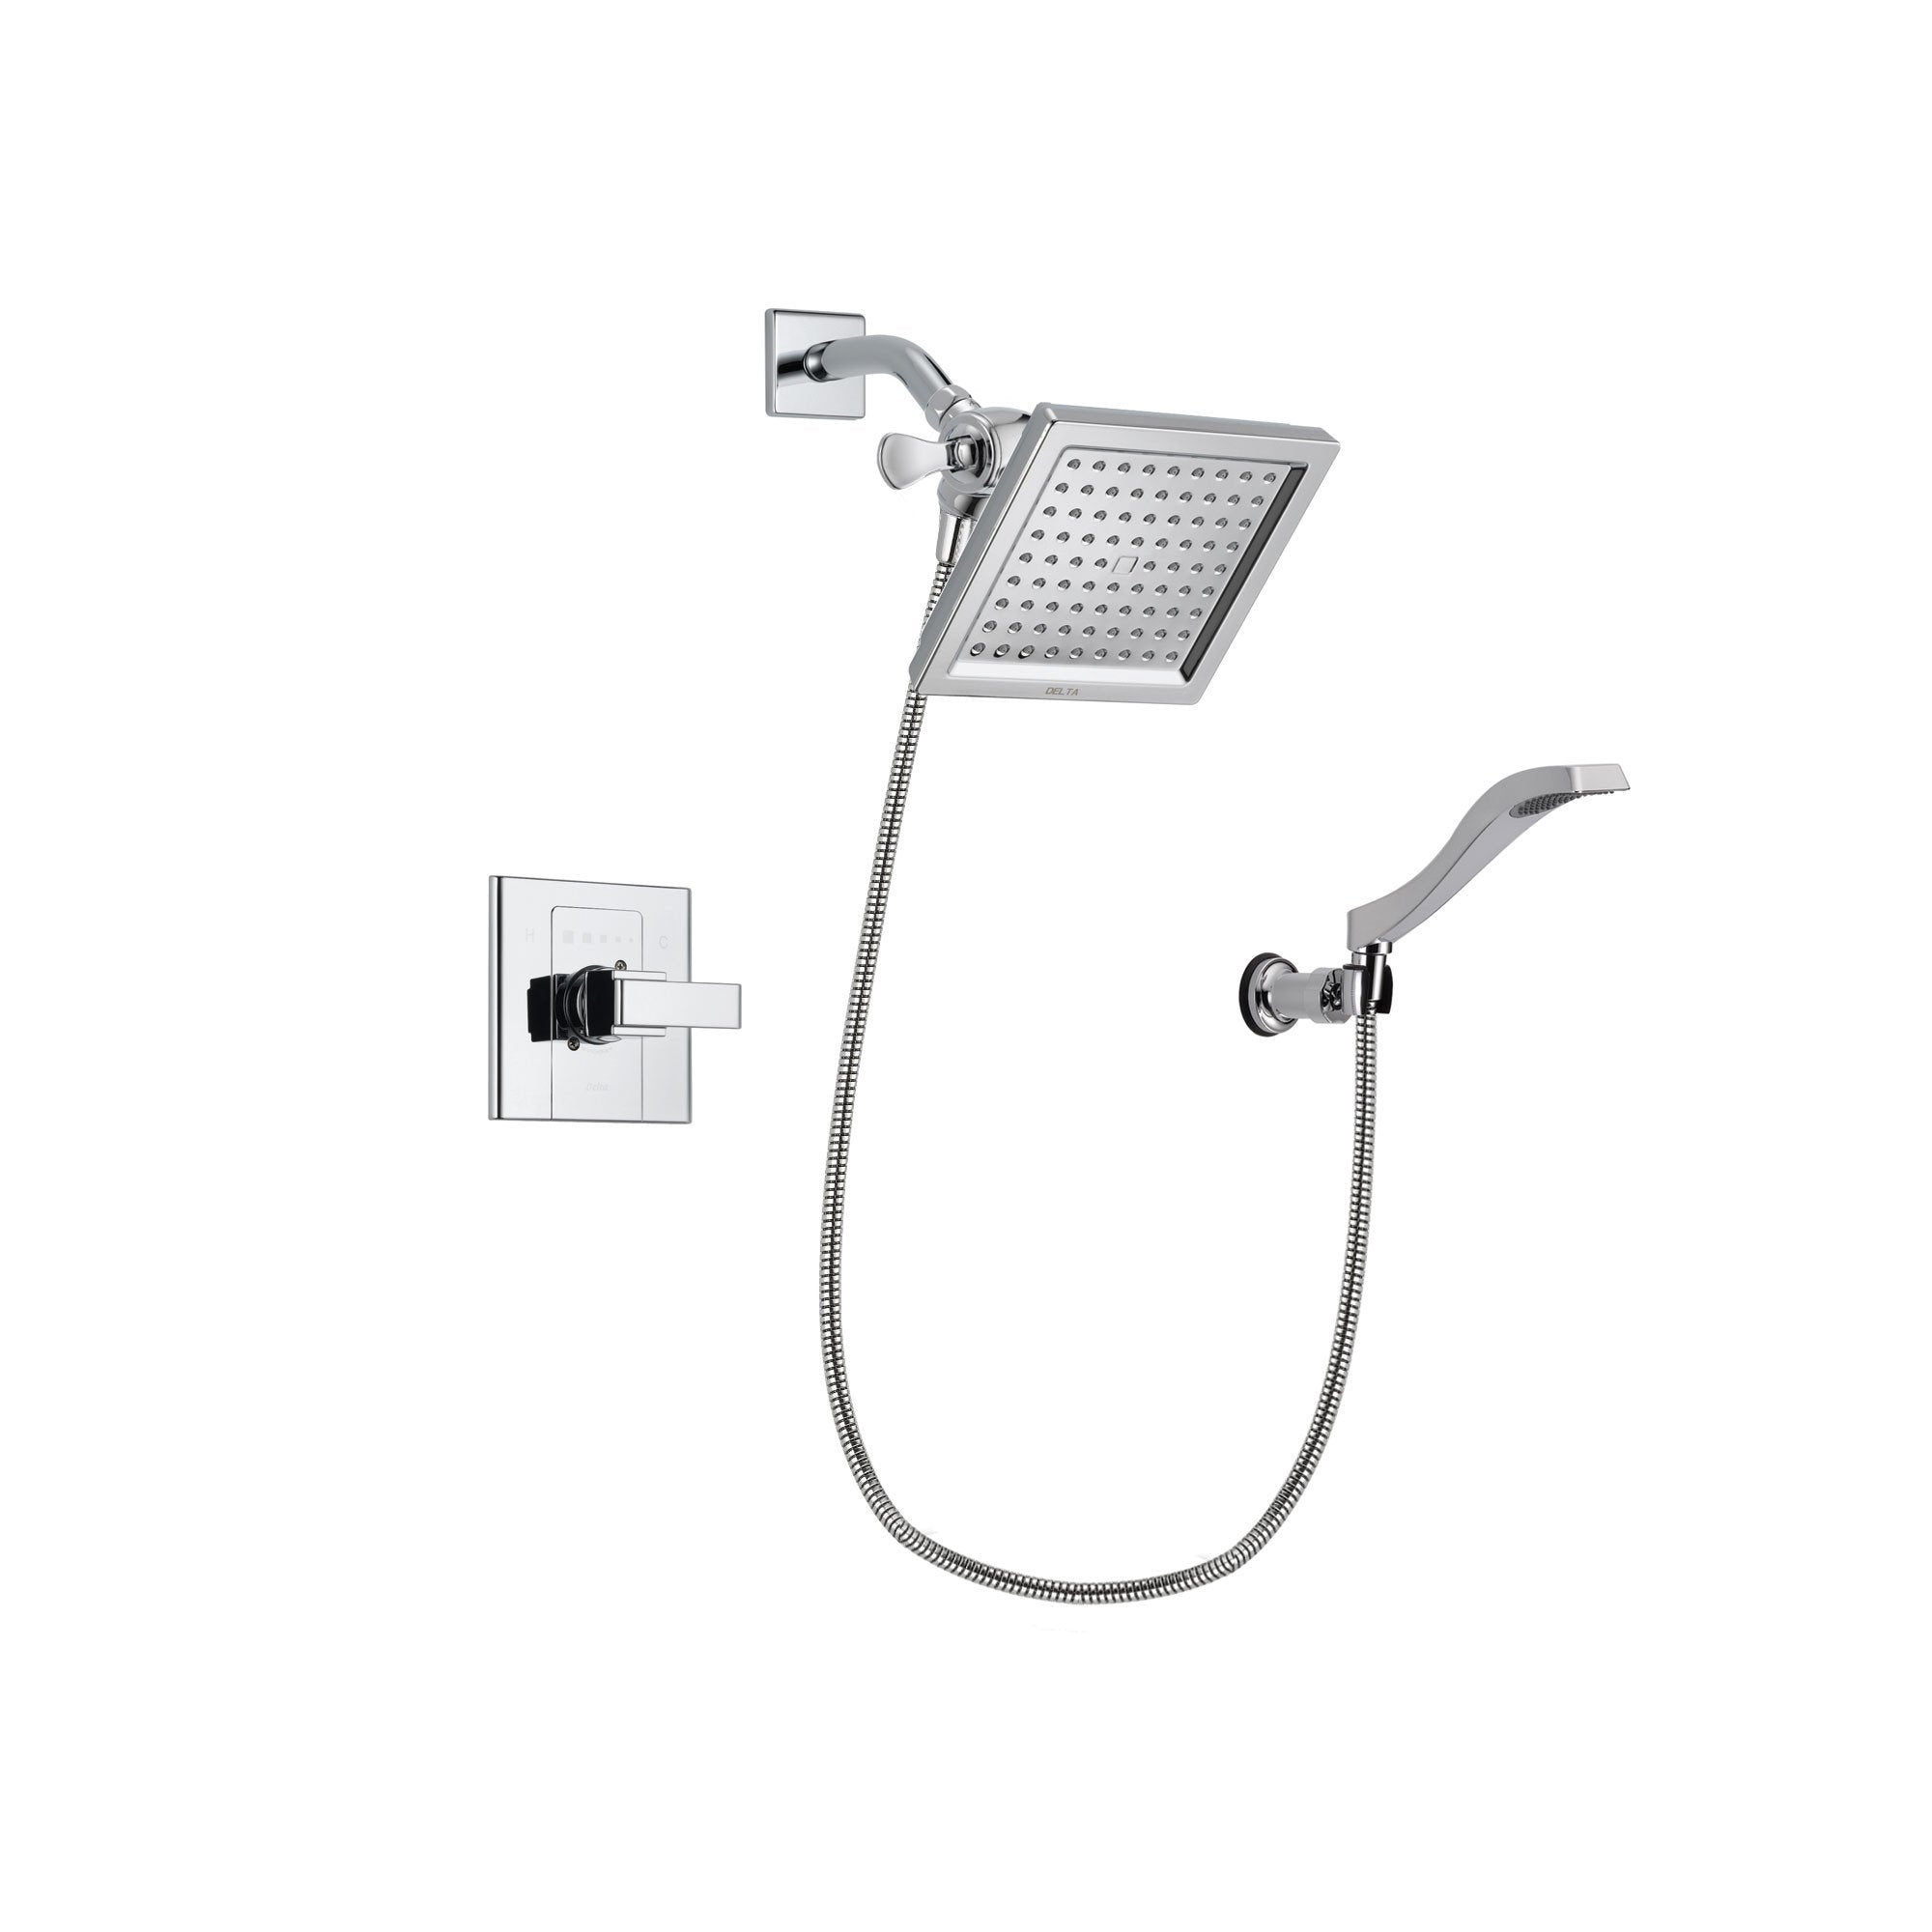 Delta Arzo Chrome Finish Shower Faucet System Package with 6.5-inch Square Rain Showerhead and Modern Handheld Shower Spray with Wall Bracket and Hose Includes Rough-in Valve DSP0028V